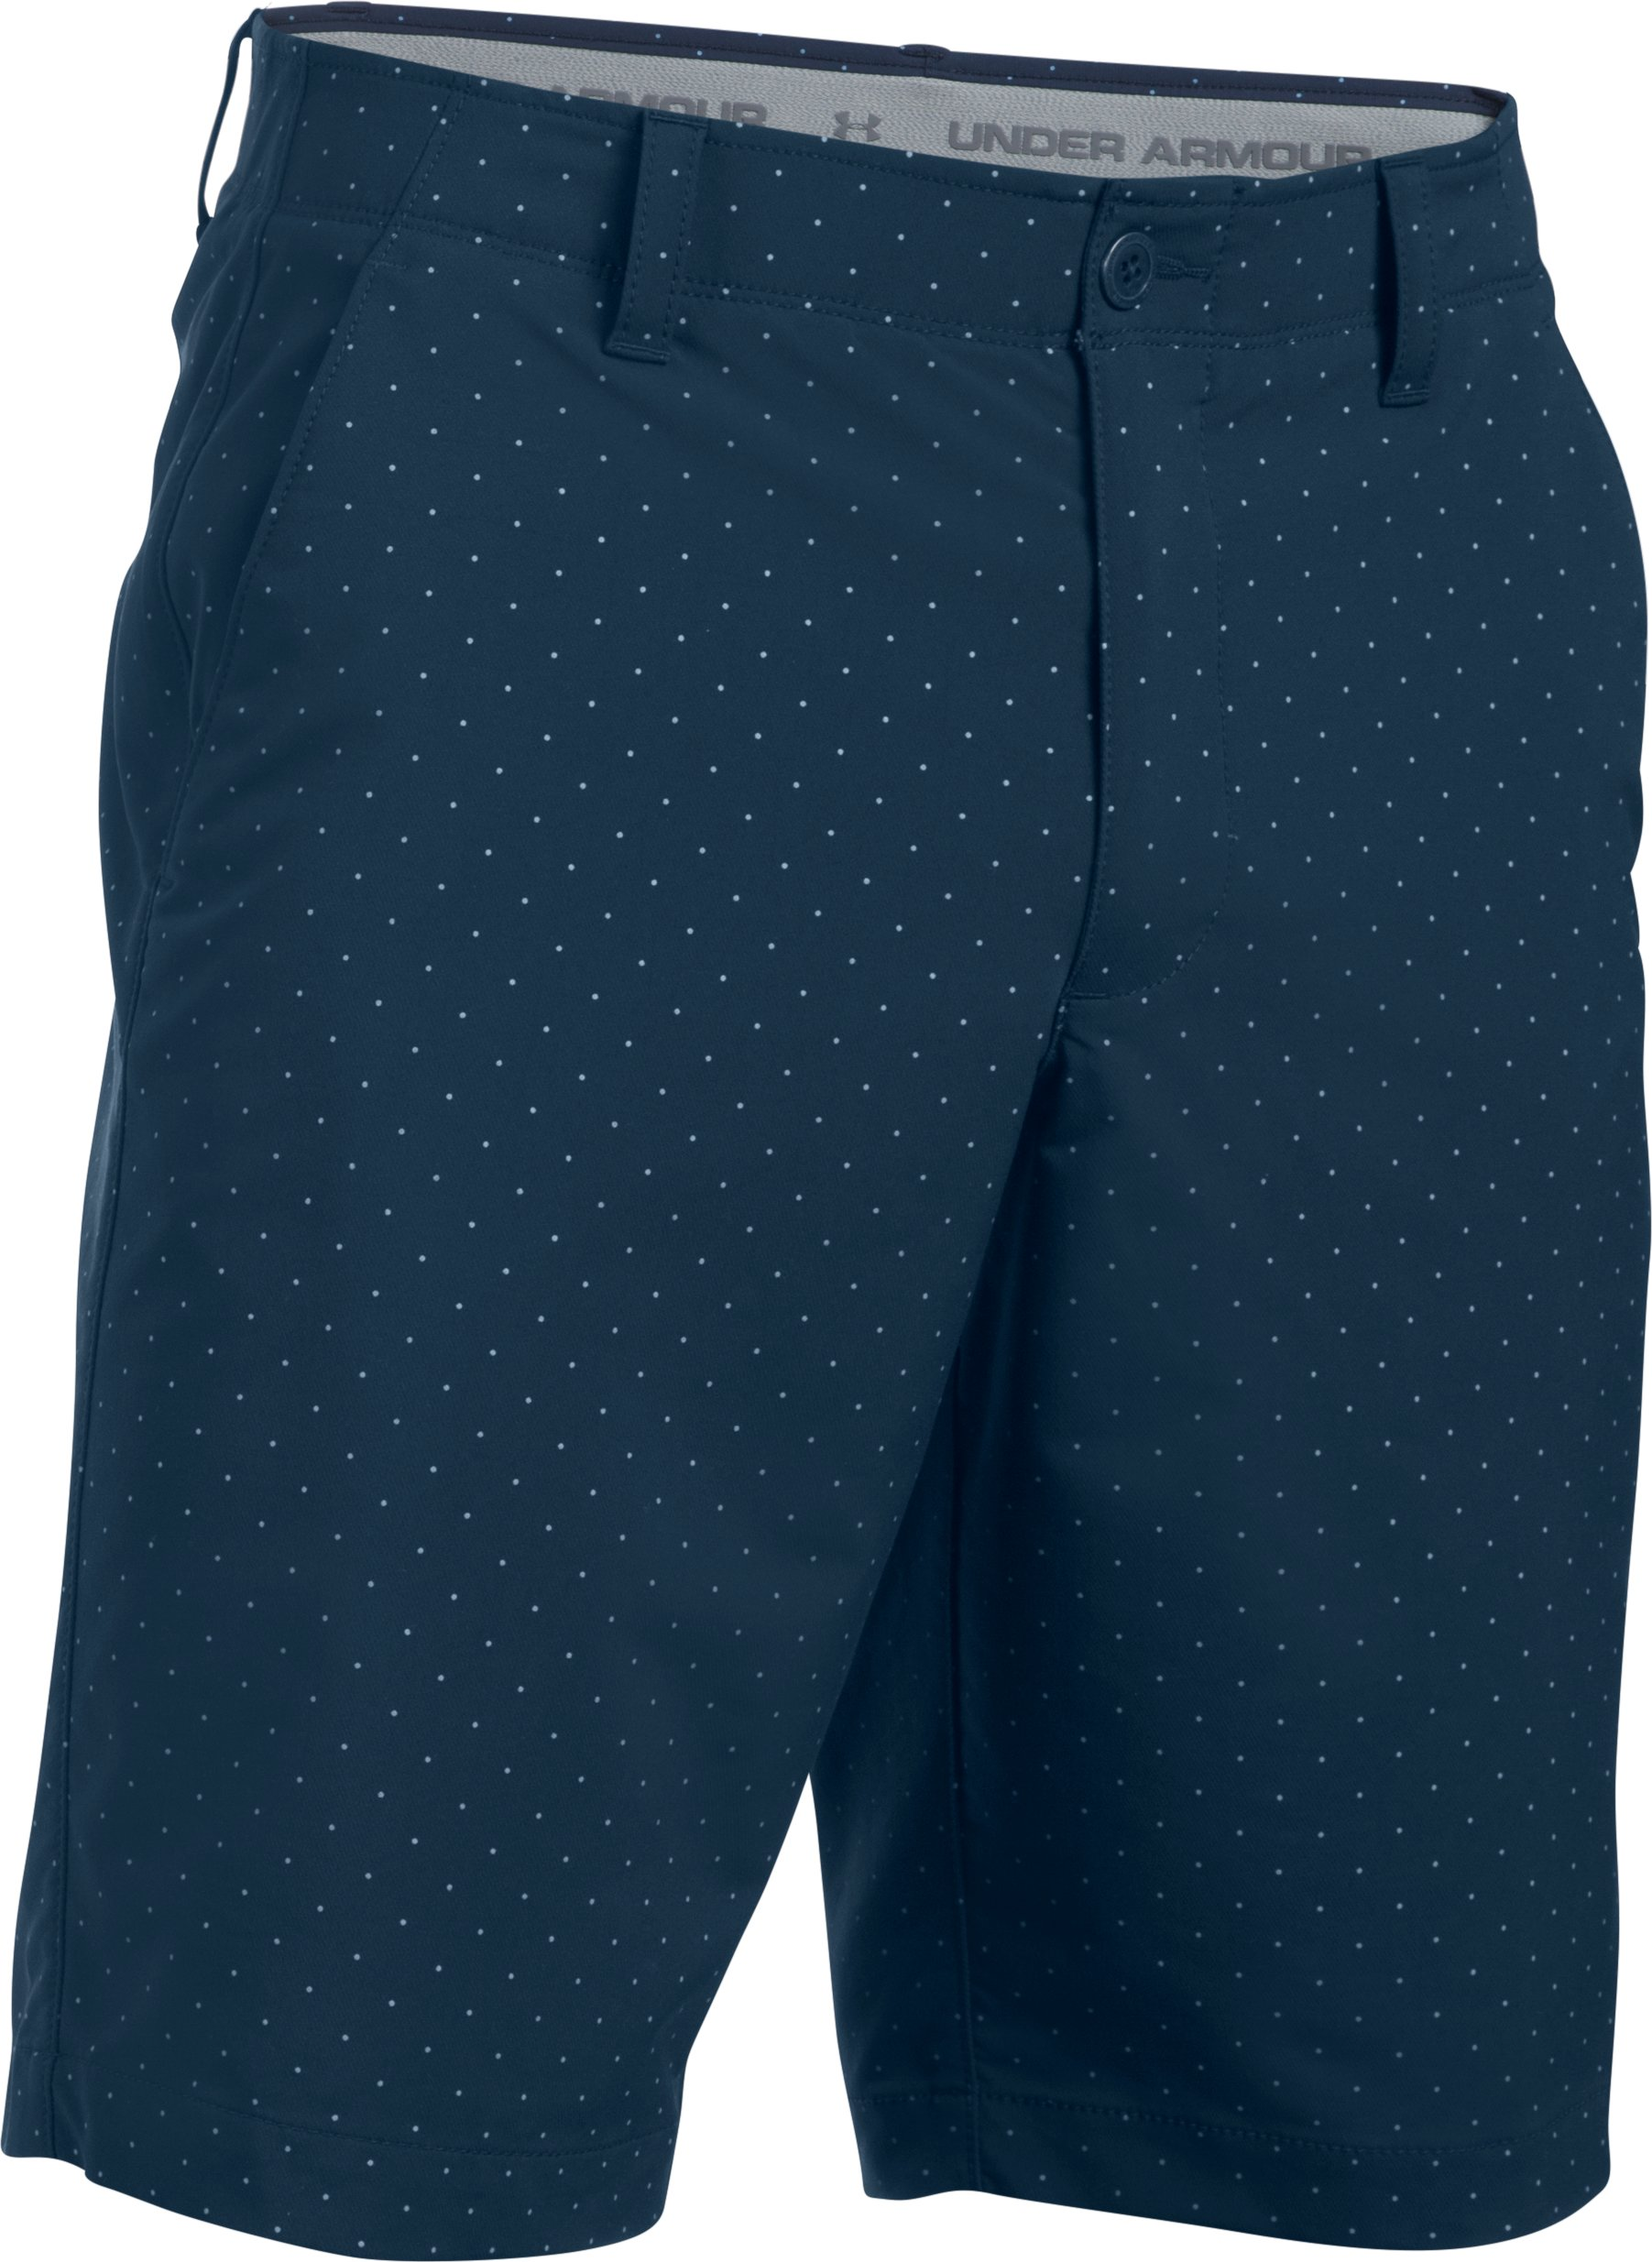 Men's UA Match Play Textured Shorts, Academy,